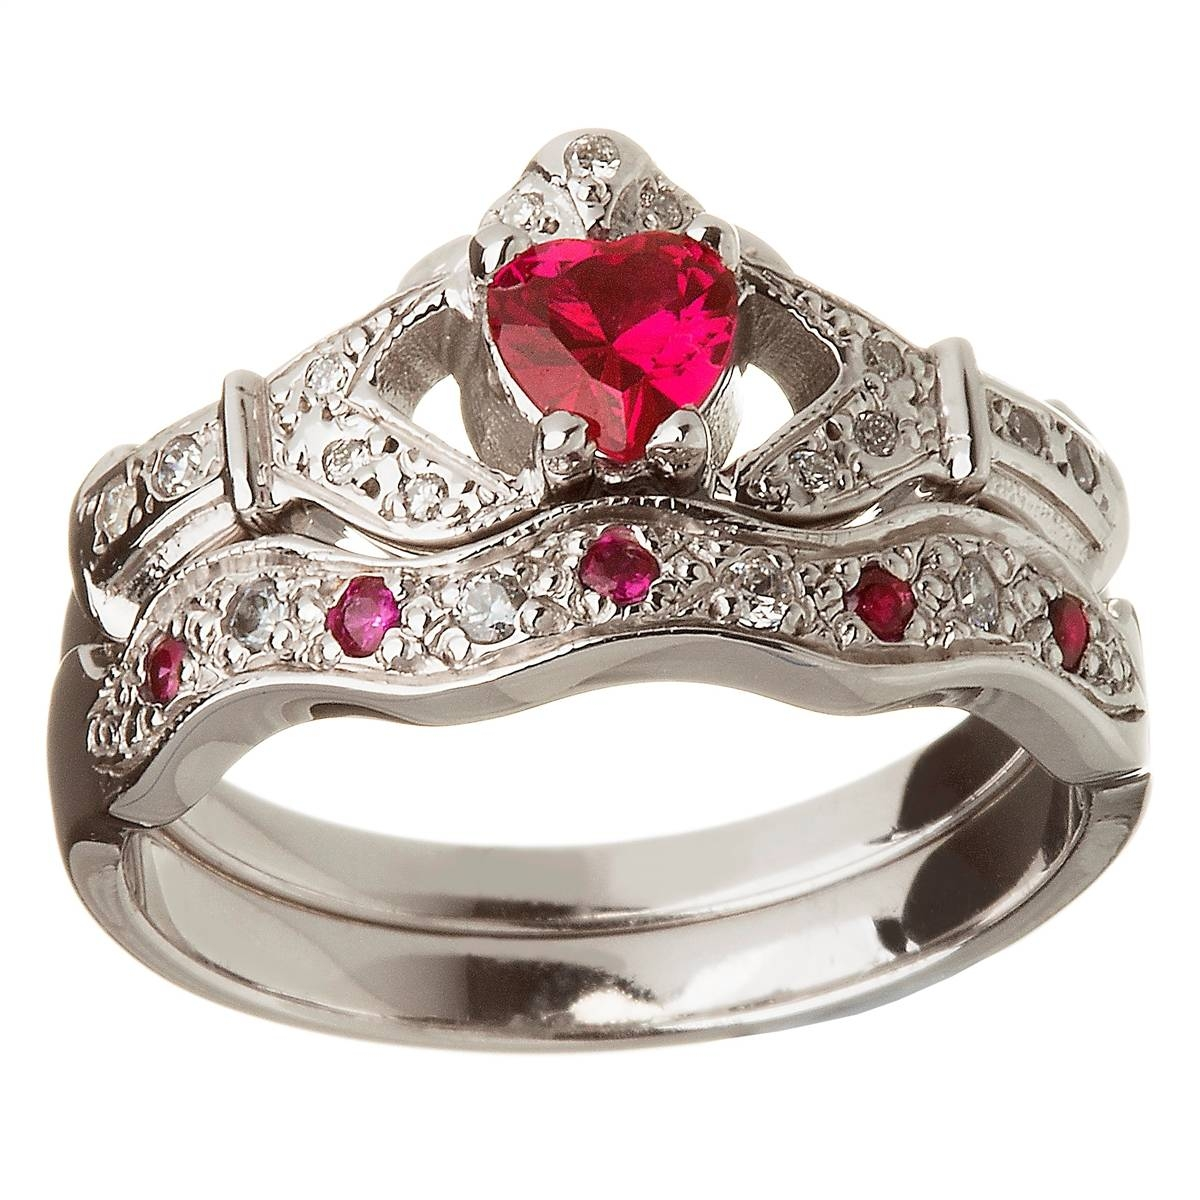 14K White Gold Ruby Set Heart Claddagh Ring & Wedding Ring Set Throughout Claddagh Diamond Engagement Rings (View 2 of 15)